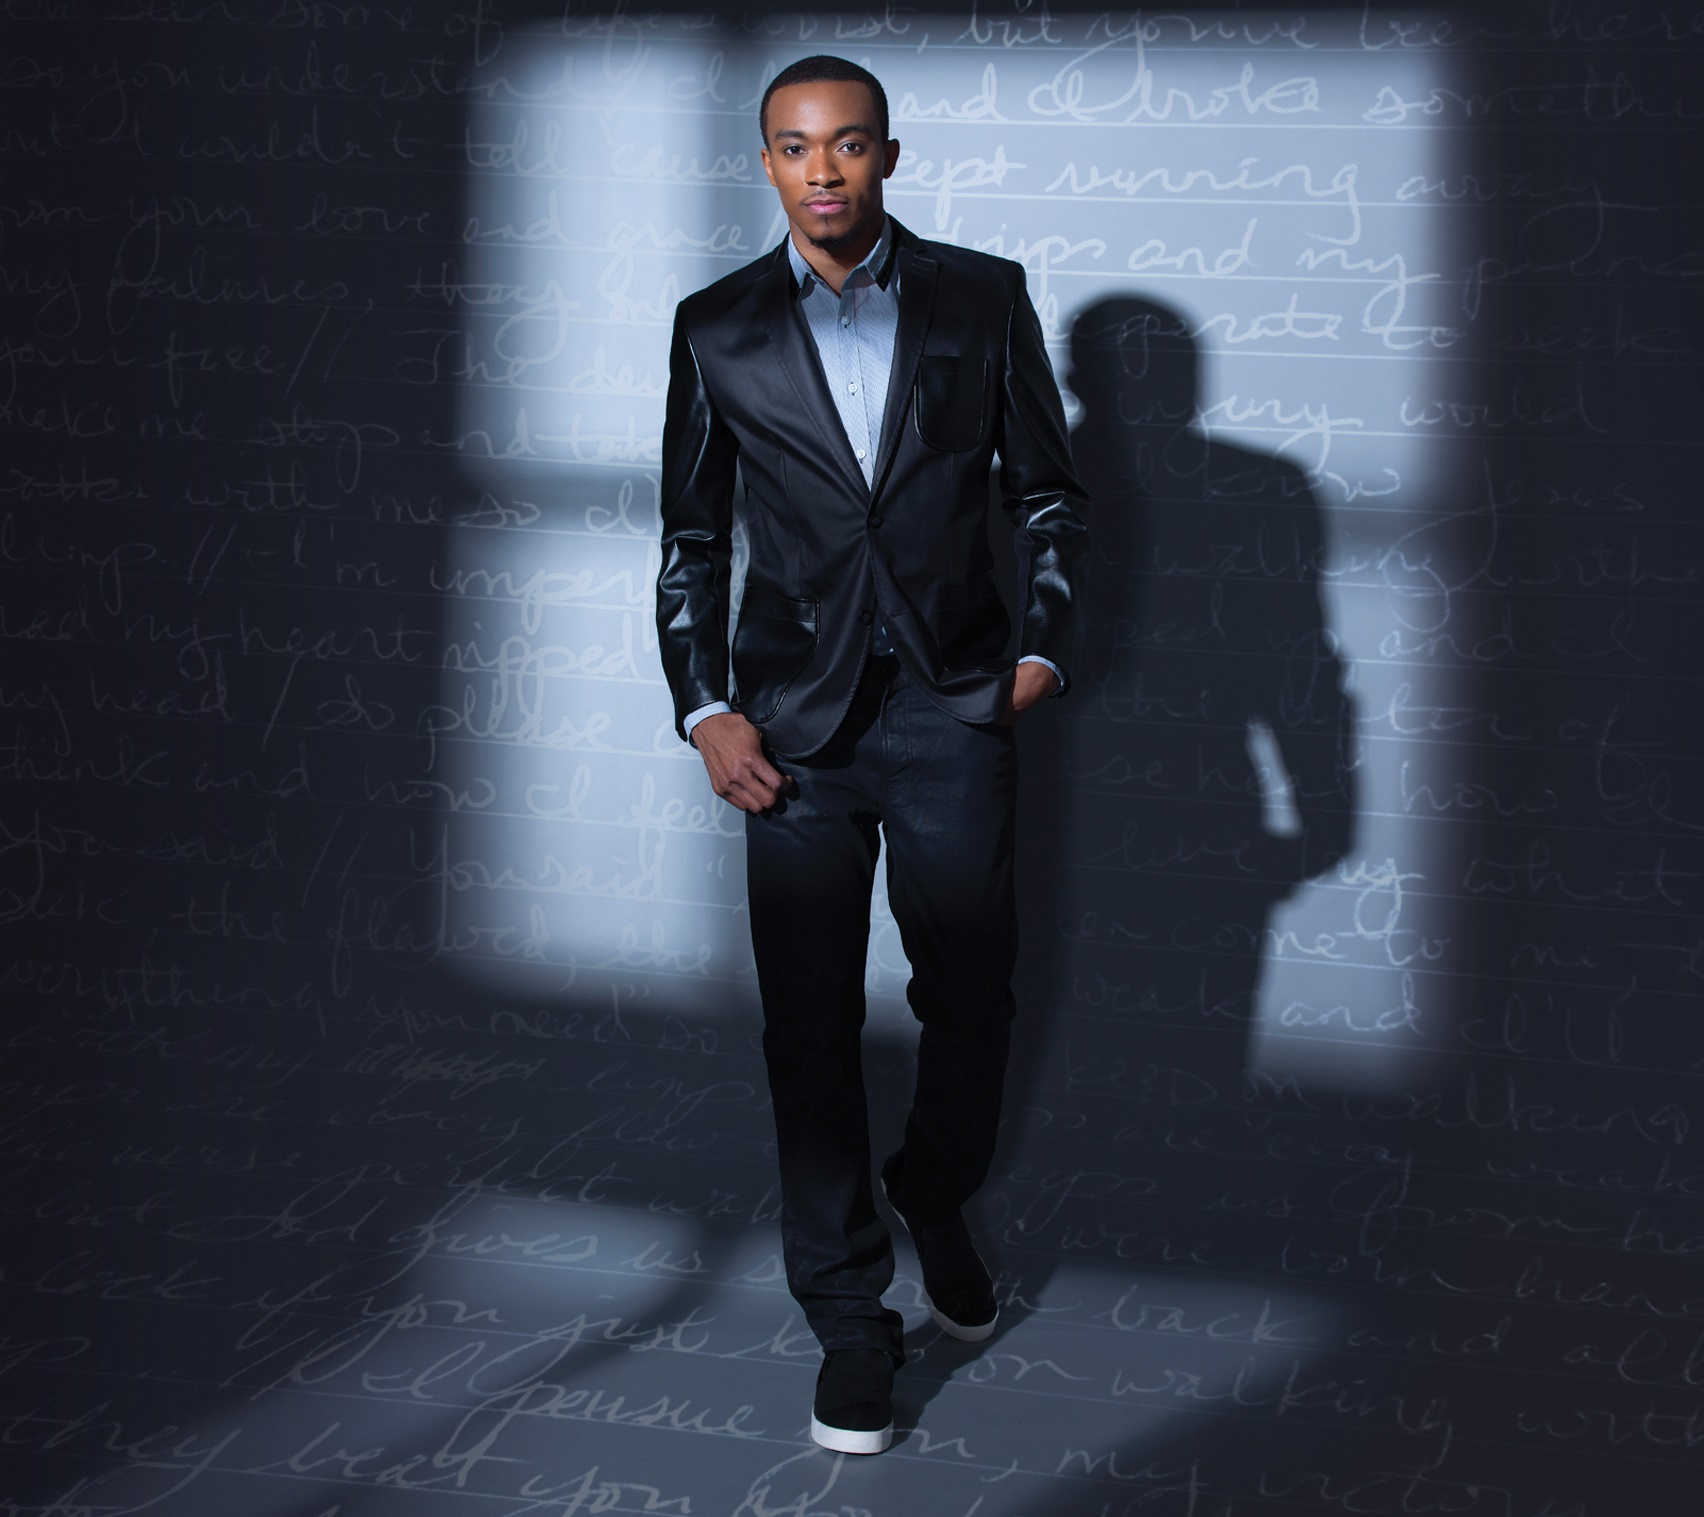 Jonathan McReynolds-black jacket-Photo Derek Blanks